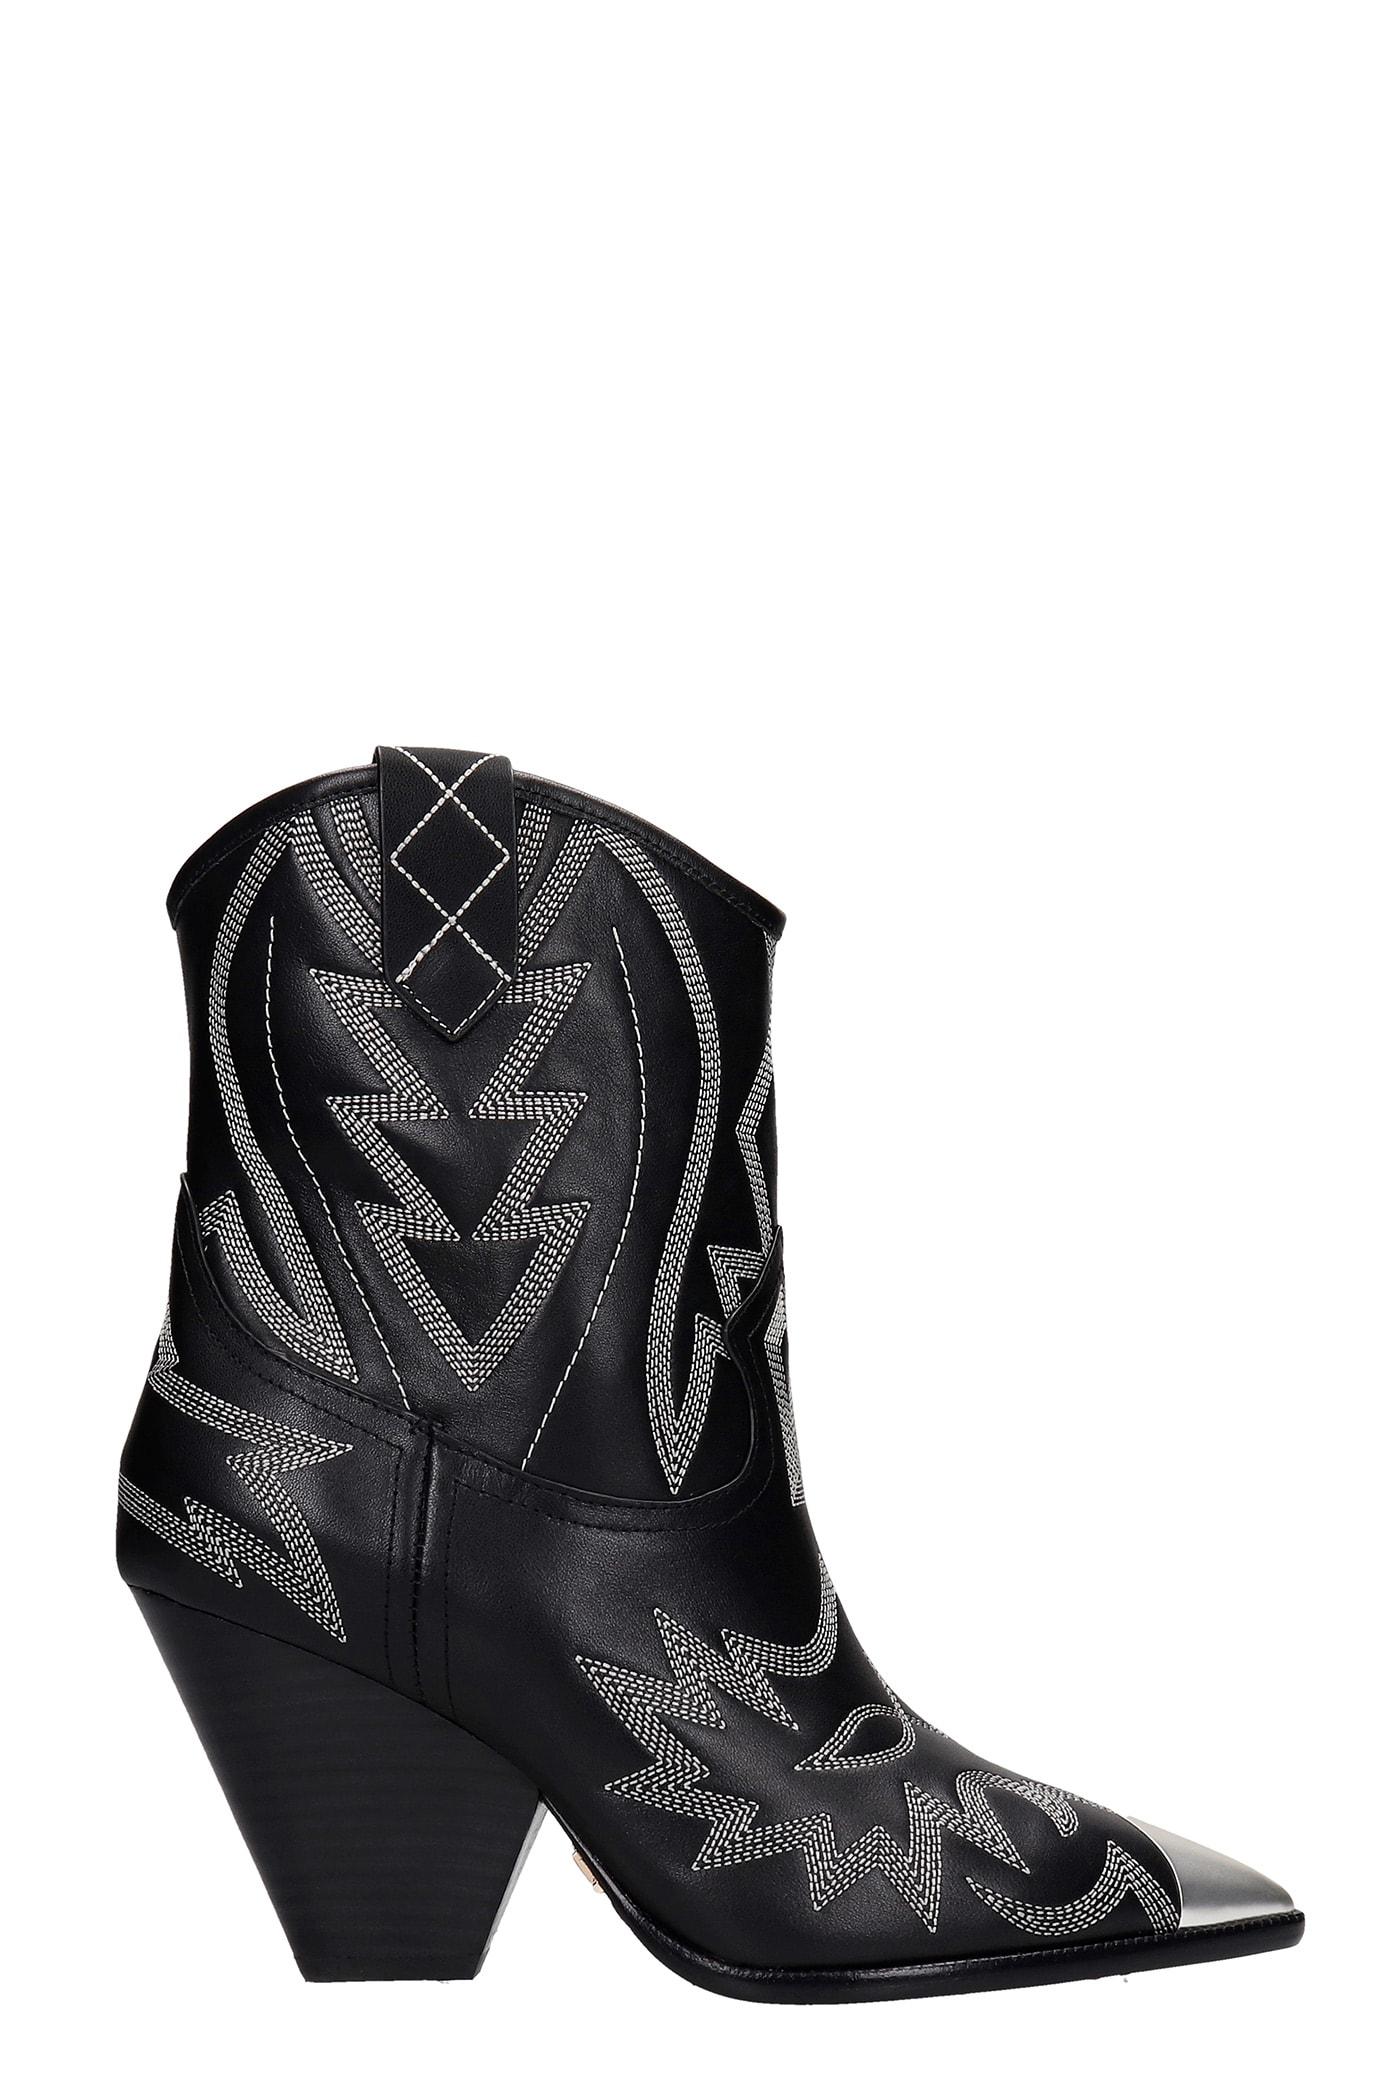 Lola Cruz Texan Ankle Boots In Black Leather